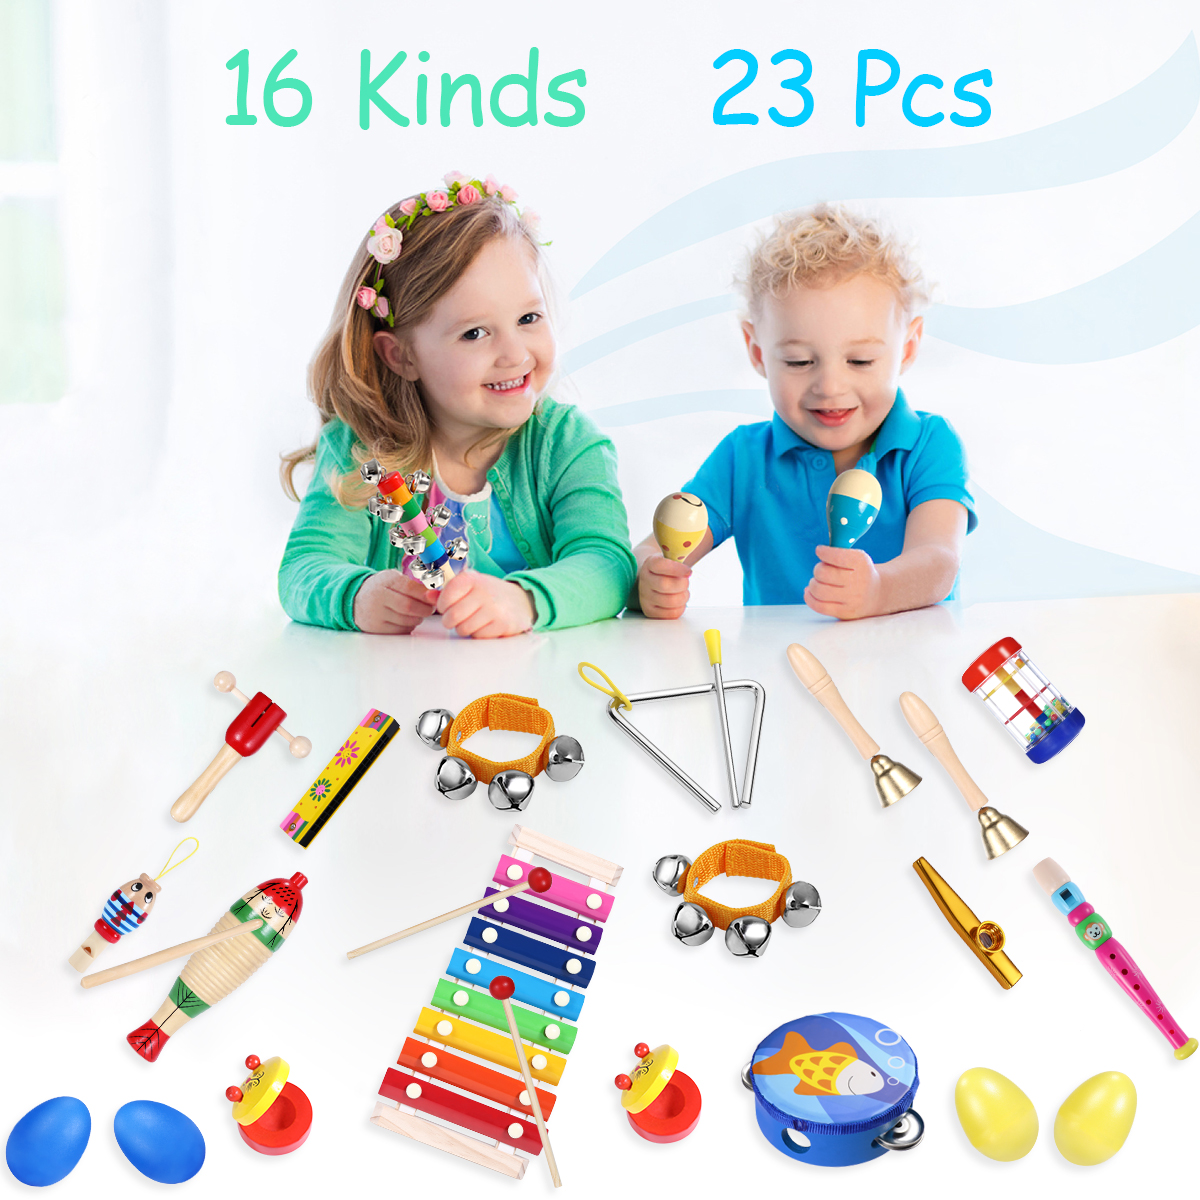 24Pcs Shisay Musical Instruments for Toddlers 24Pcs Set with Backpack Childrens Wooden Percussion drum bells whistle Musical Instruments Promote Early Education for Kids Boys Girls